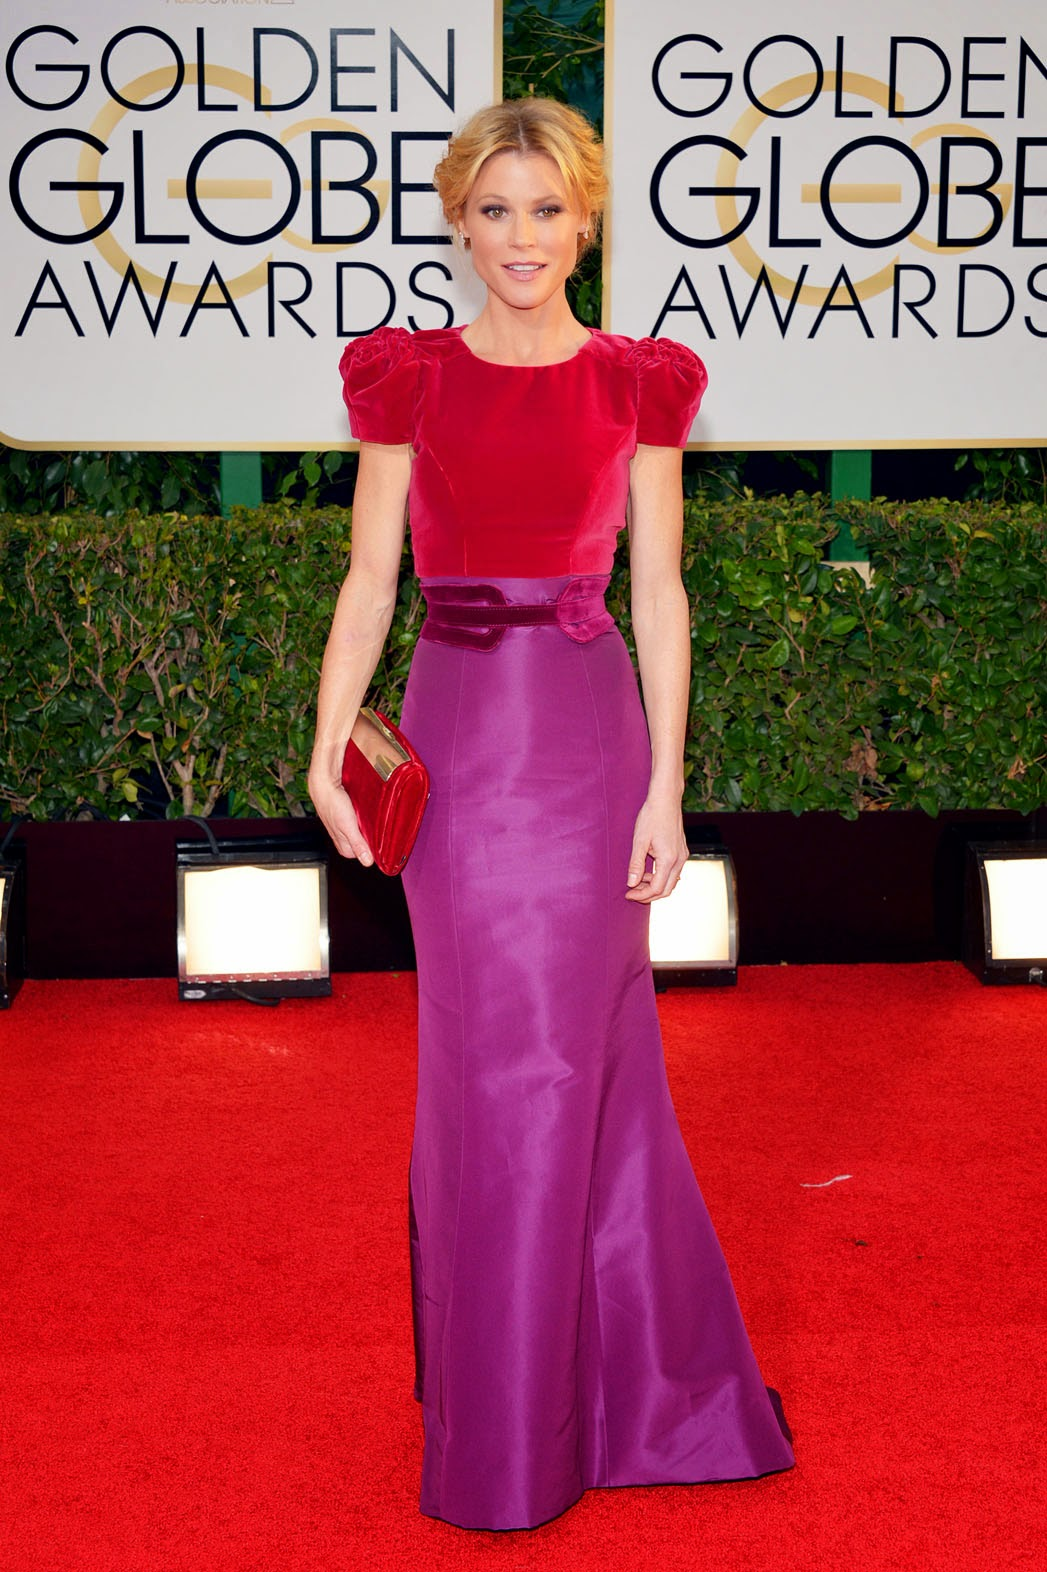 Julie Bowen in Carolina Herrera. If you're into color blocks then check out this modest knee-length color block dress